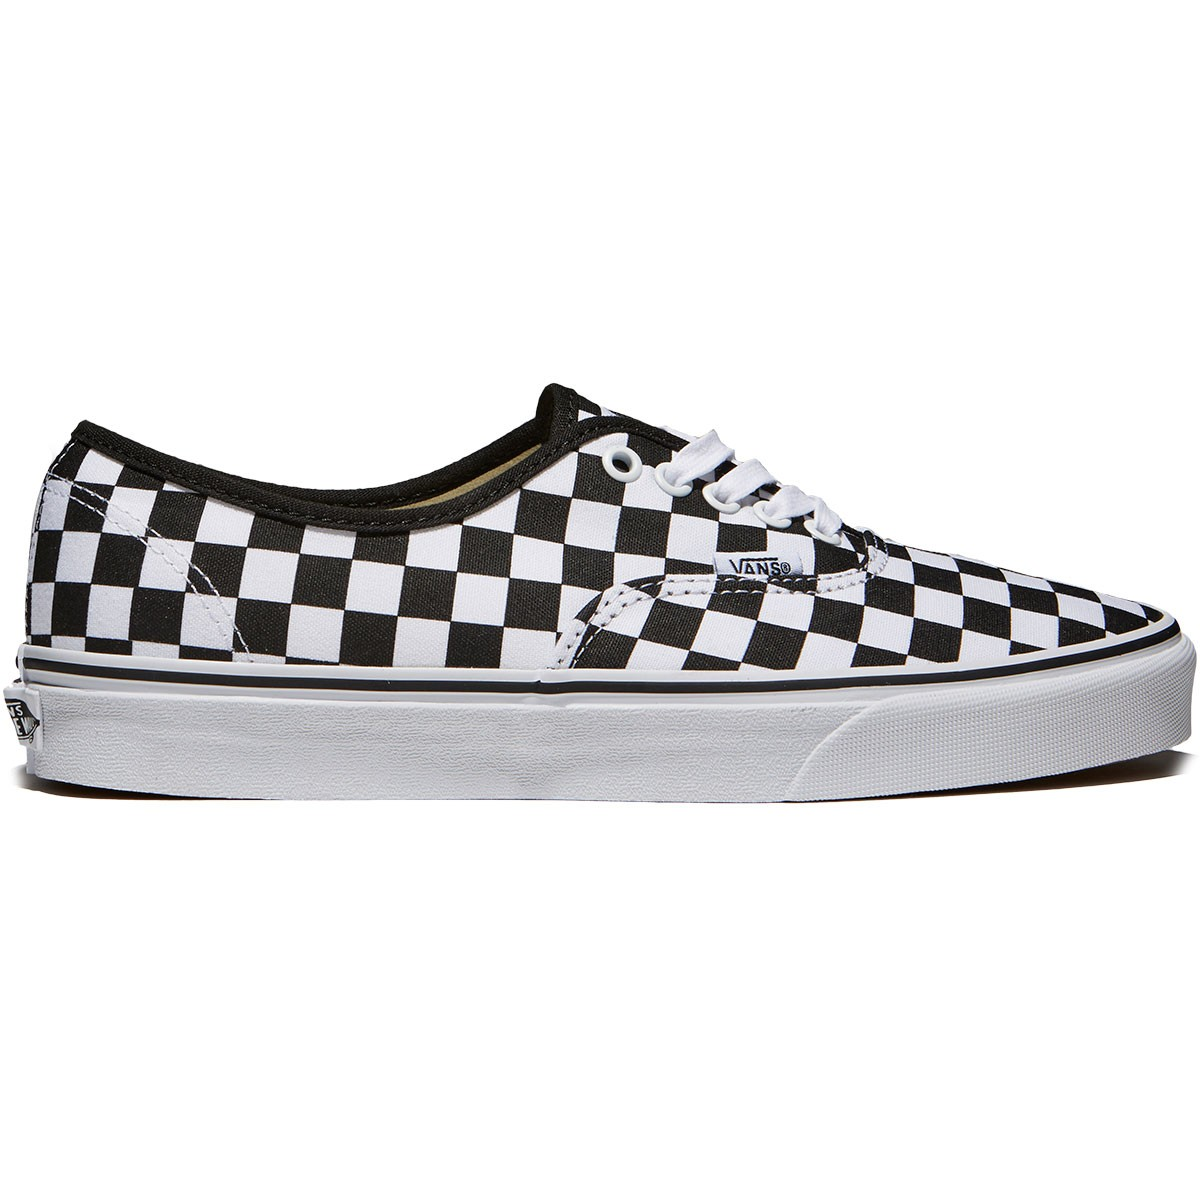 Vans Authentic Checkerboard Shoes - Black True White - 10.5 1997a1d9ff5